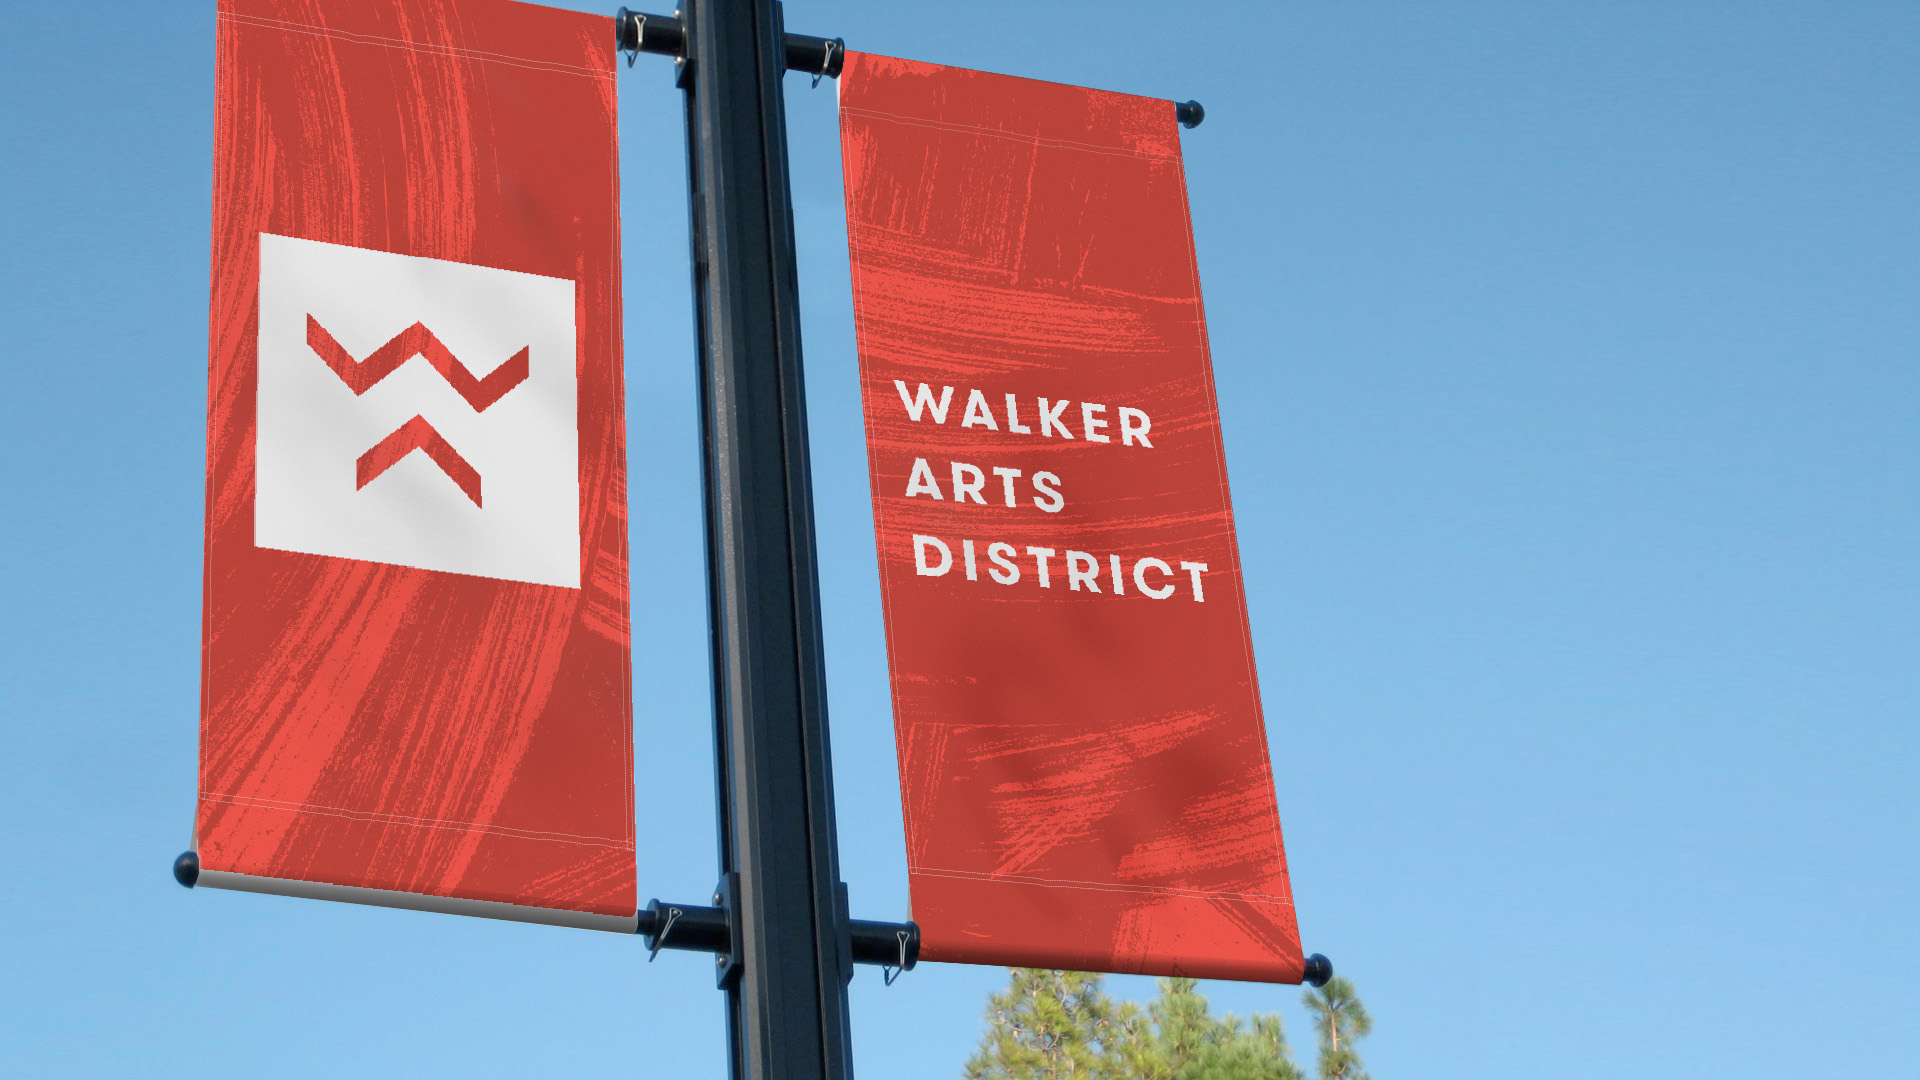 Norman Arts Council plans to install street flags brandishing the Walker Arts District name in the near future.